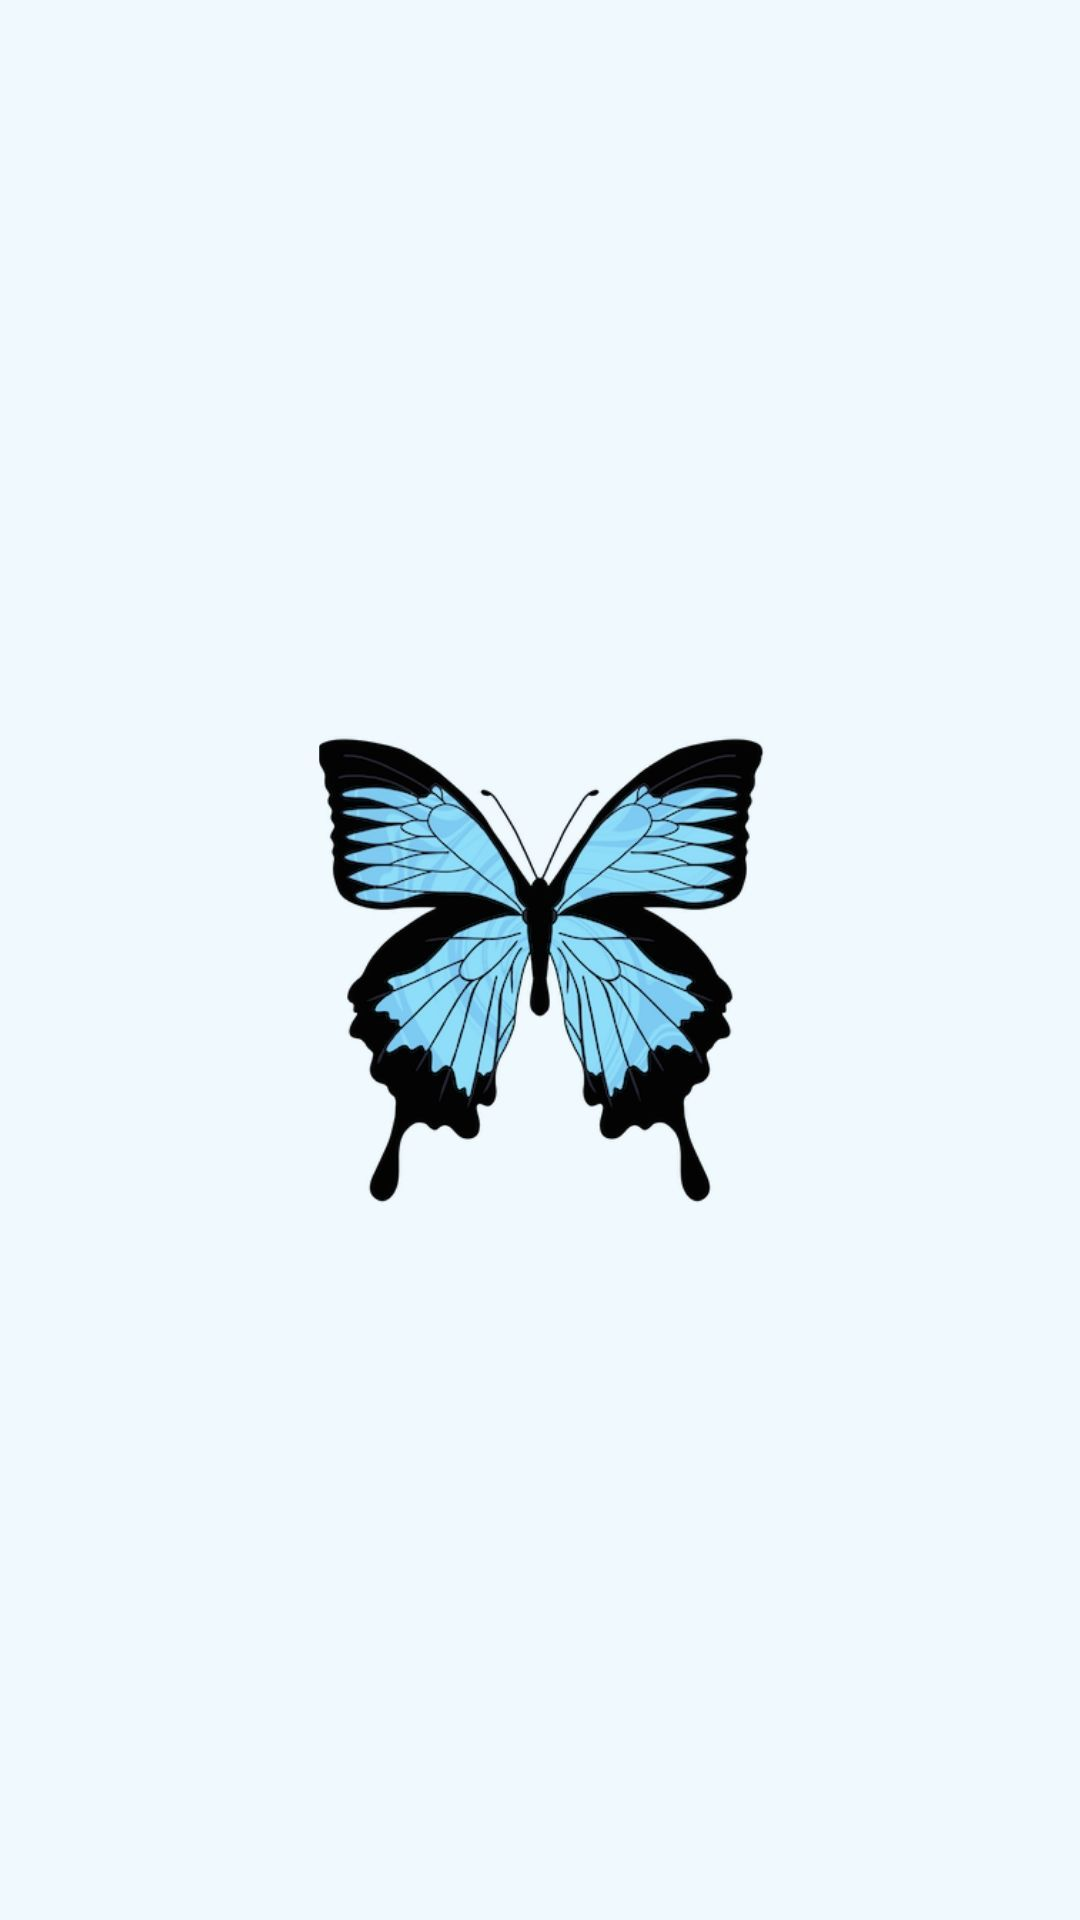 Aesthetic Tumblr Cute Blue Butterfly Wallpaper - Download ...